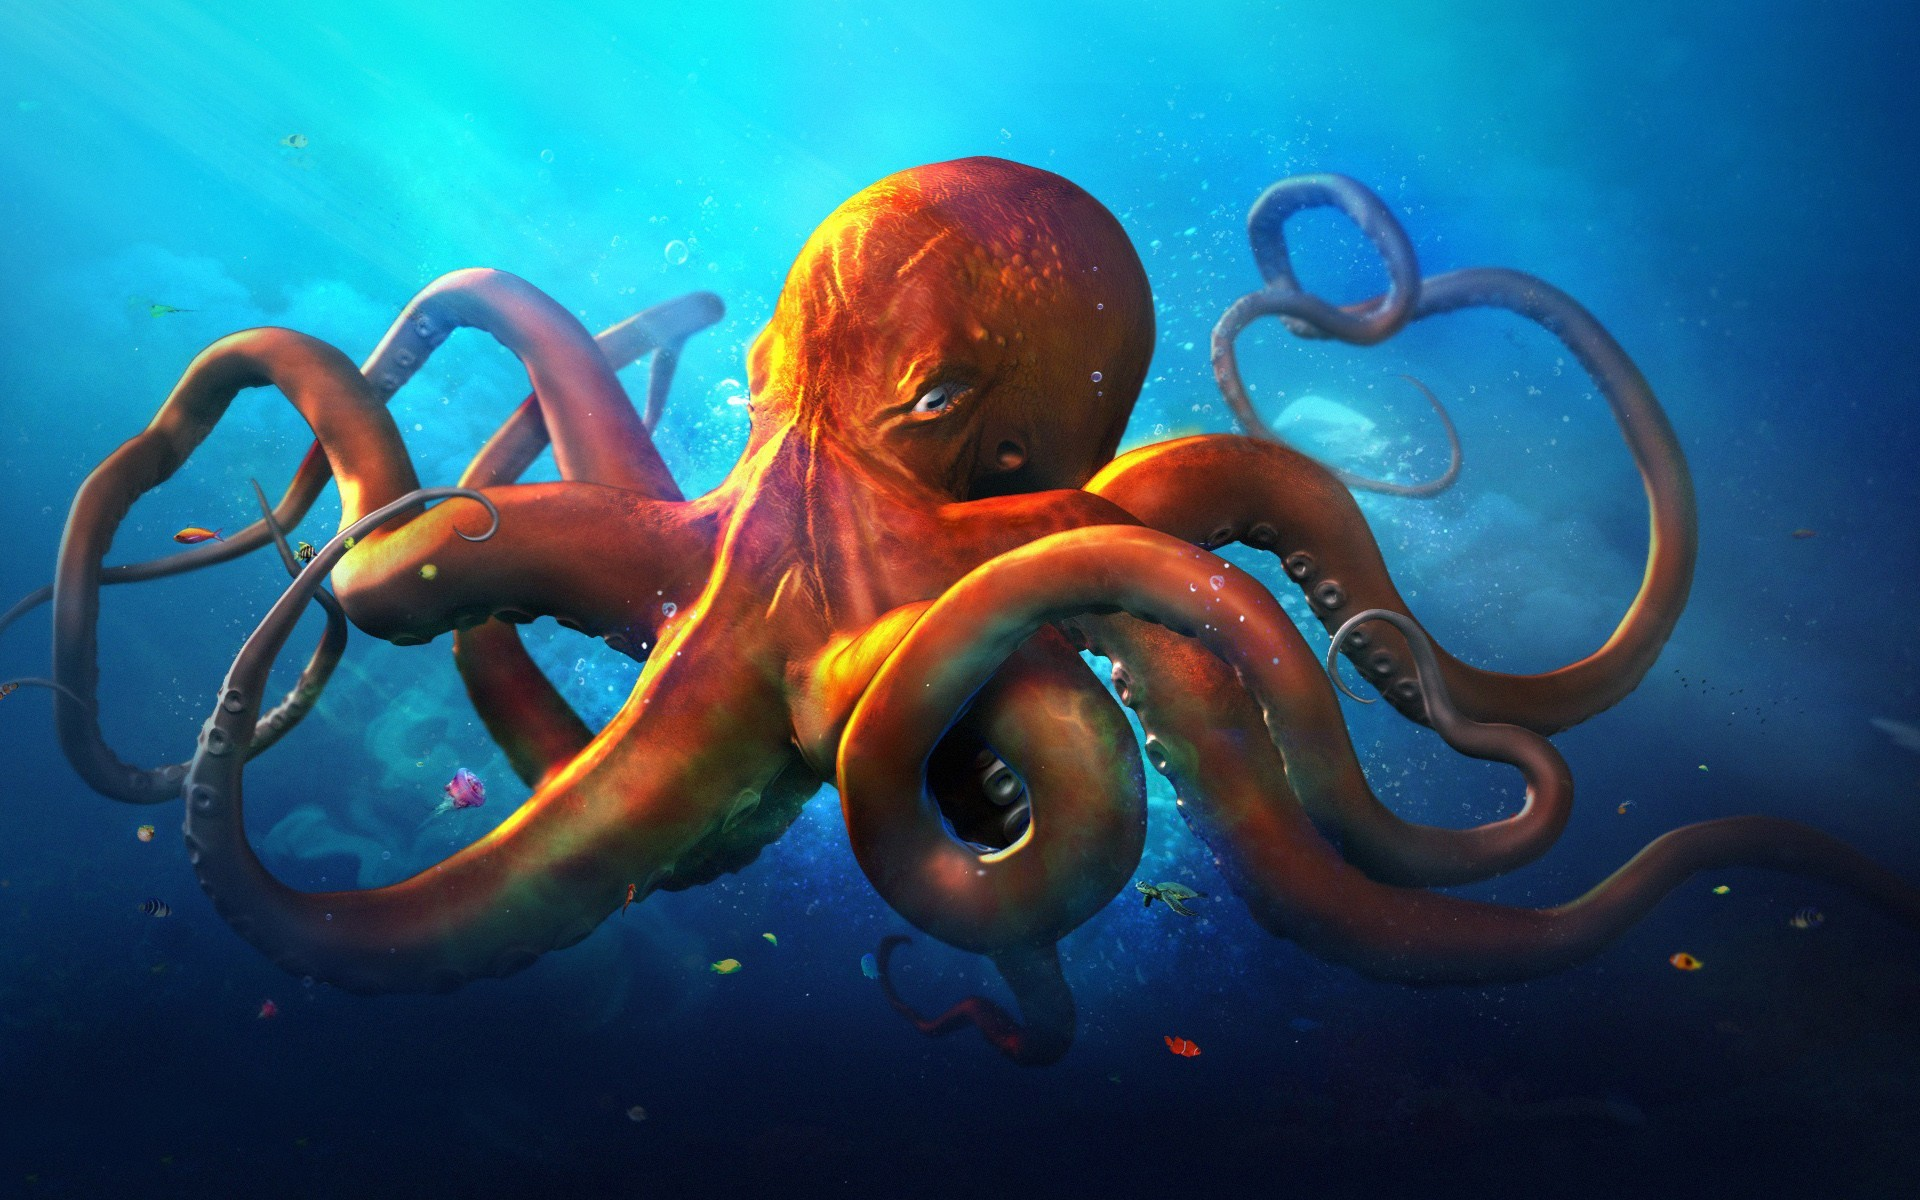 1920x1200 25 Octopus HD Wallpapers | Backgrounds - Wallpaper Abyss ...